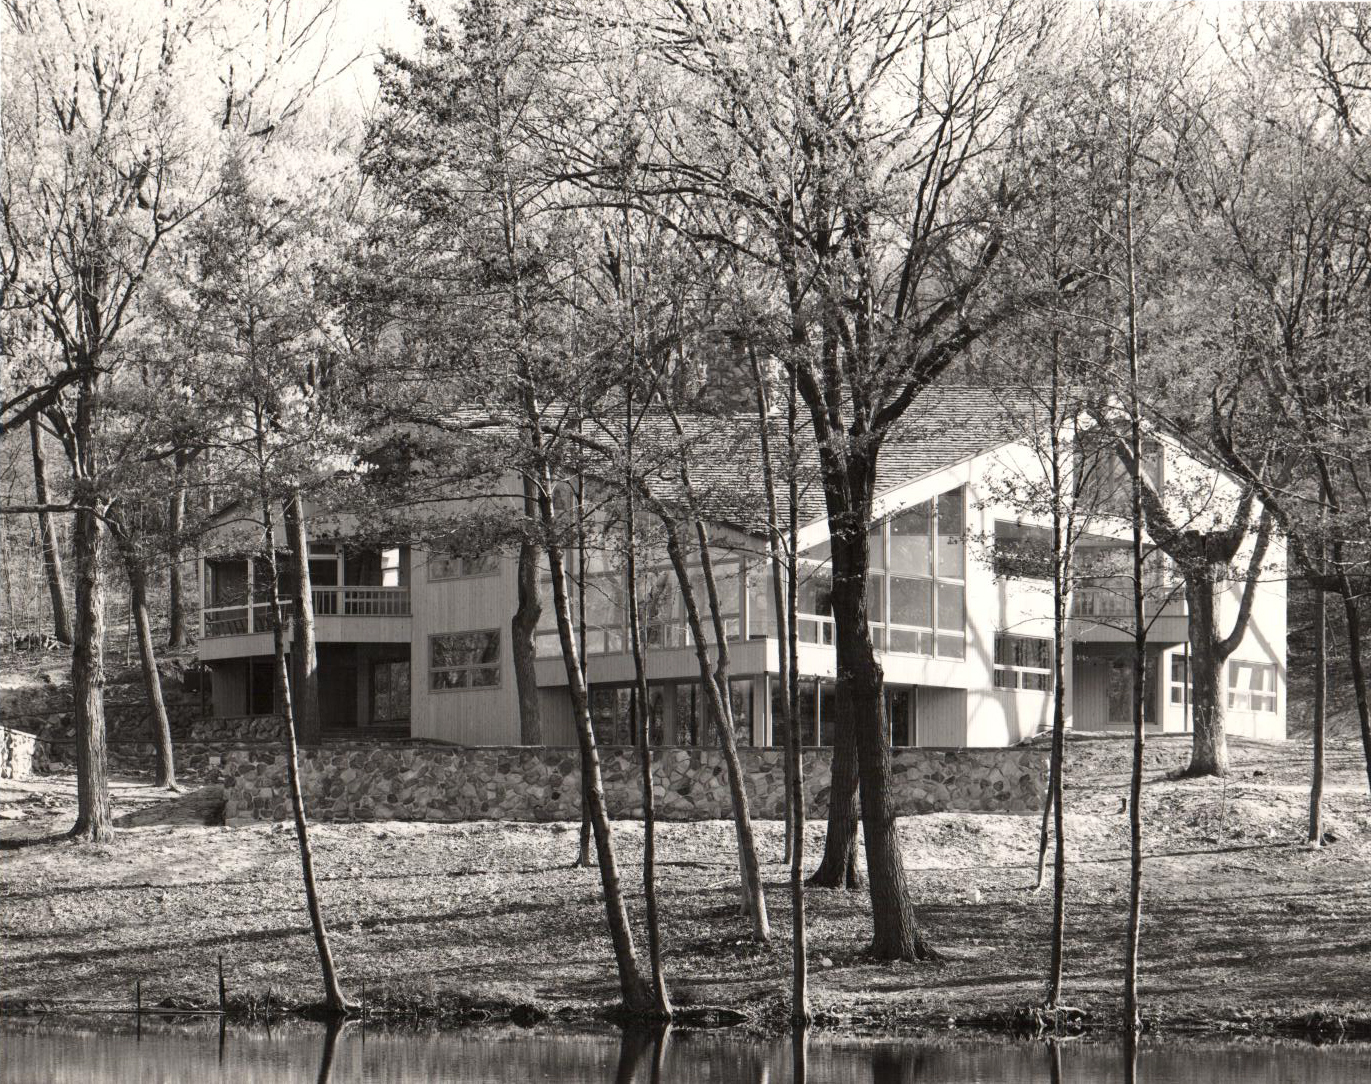 Contemporary Home at Black Point, 1970s